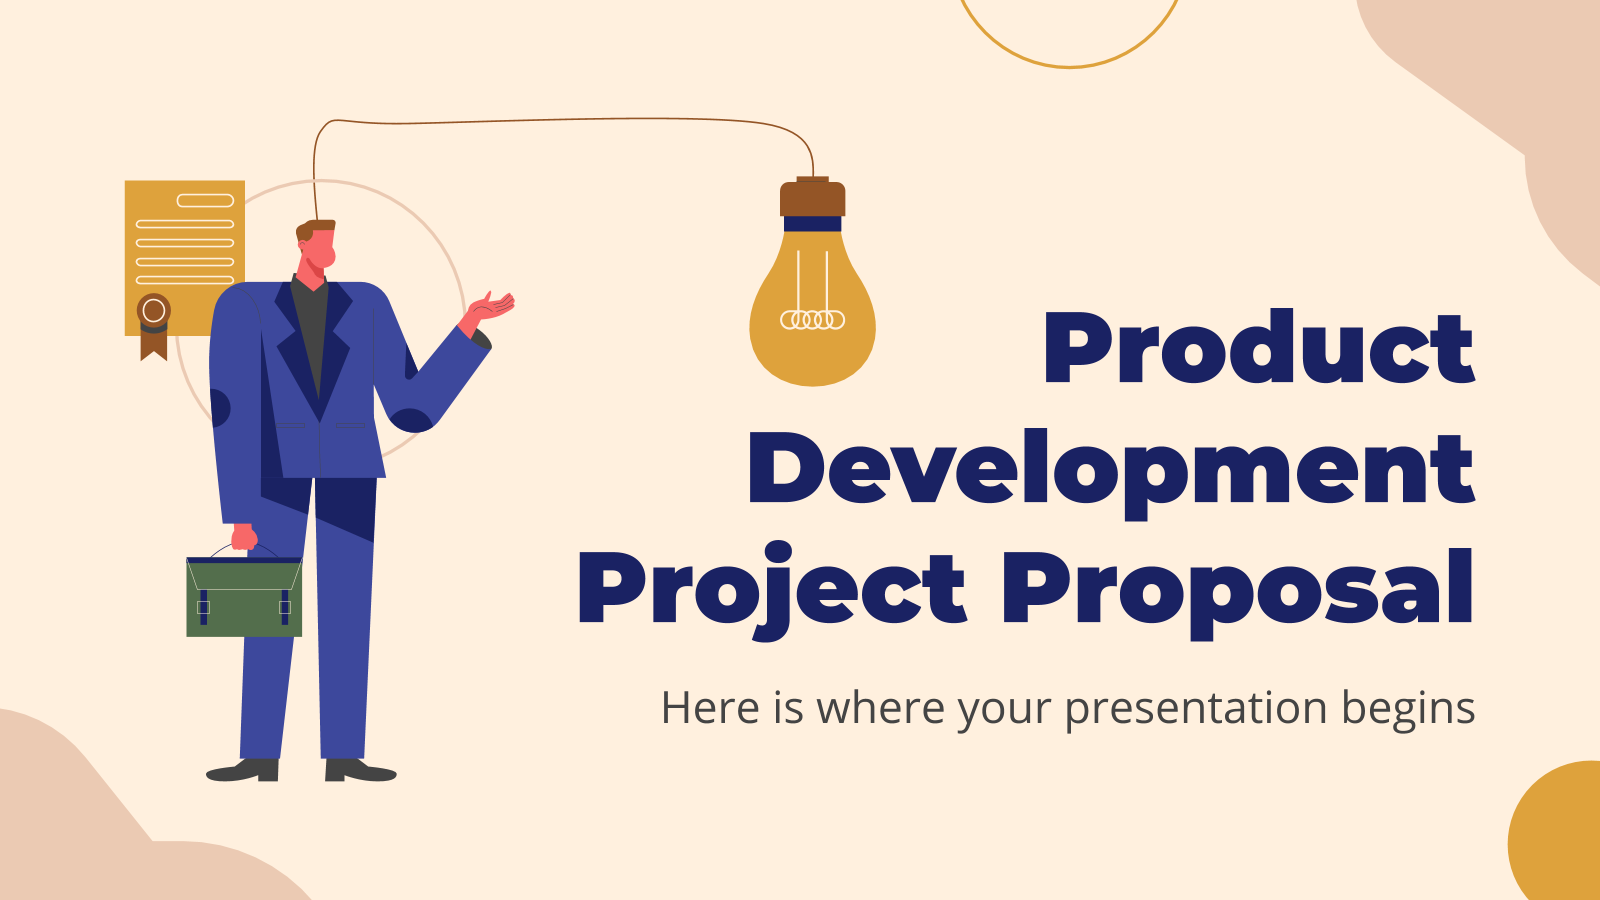 Product Development Project Proposal presentation template